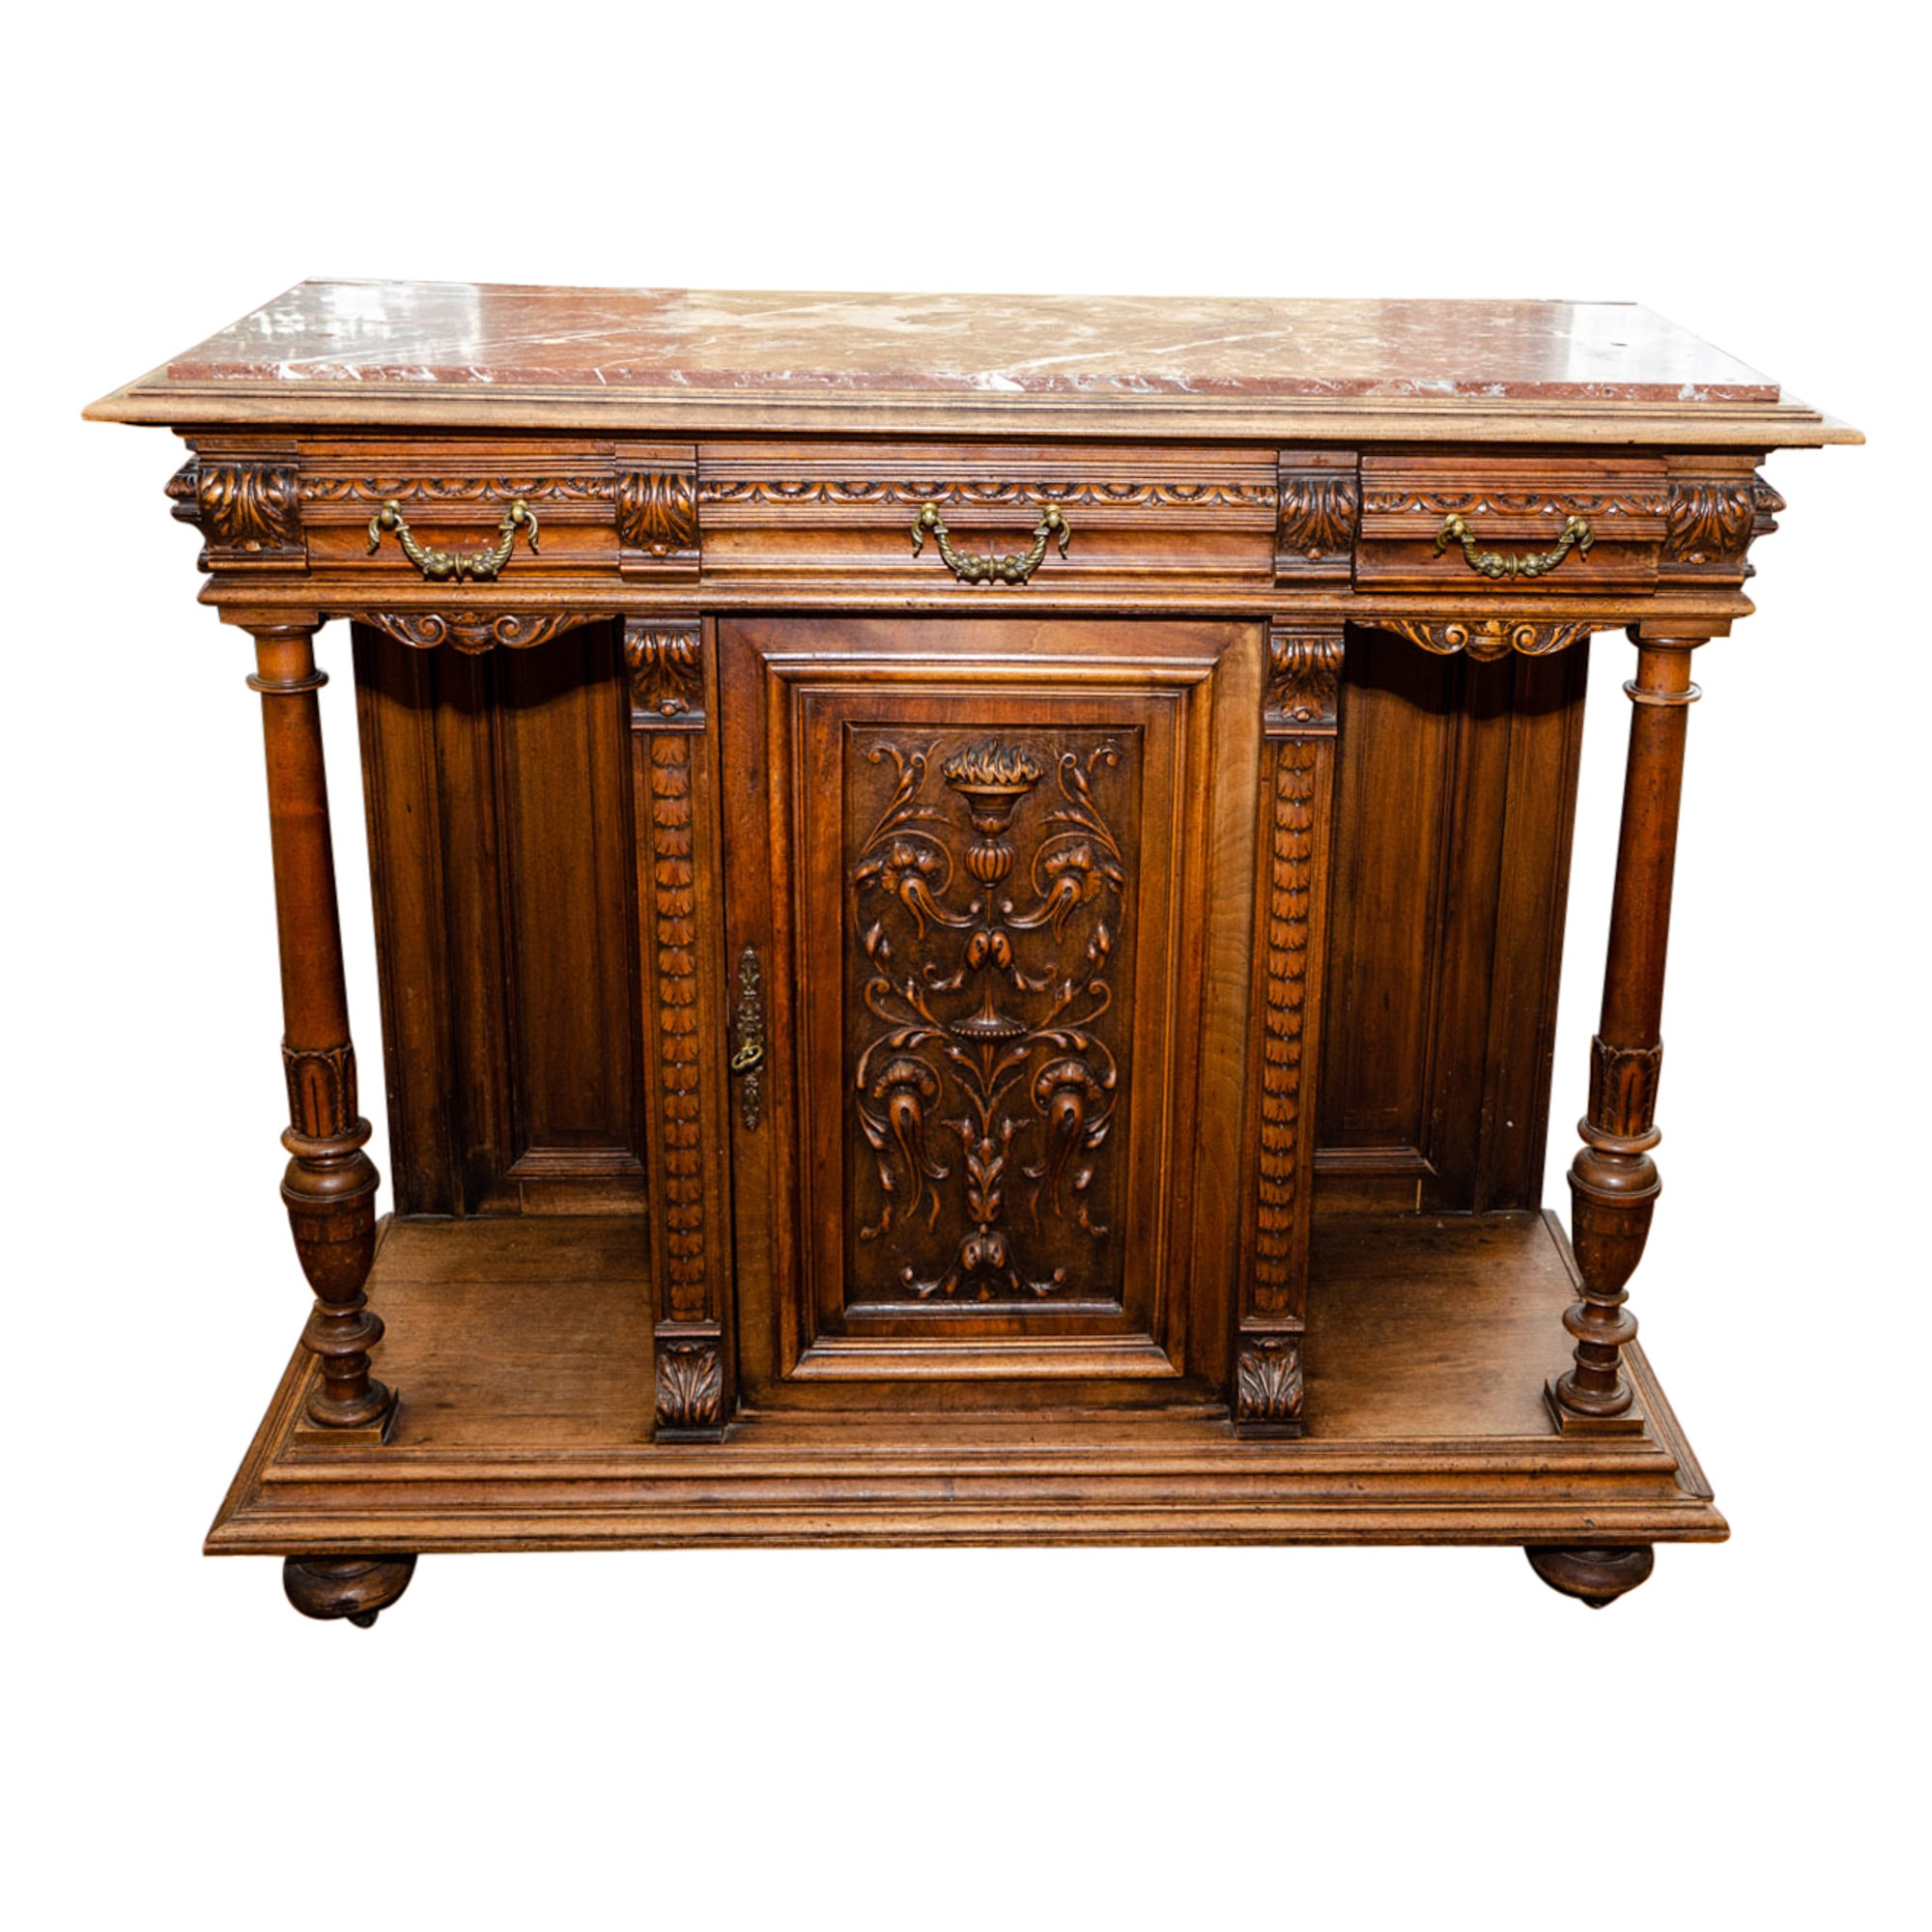 Antique French Louis XVI Style Walnut Sideboard with Marble Top